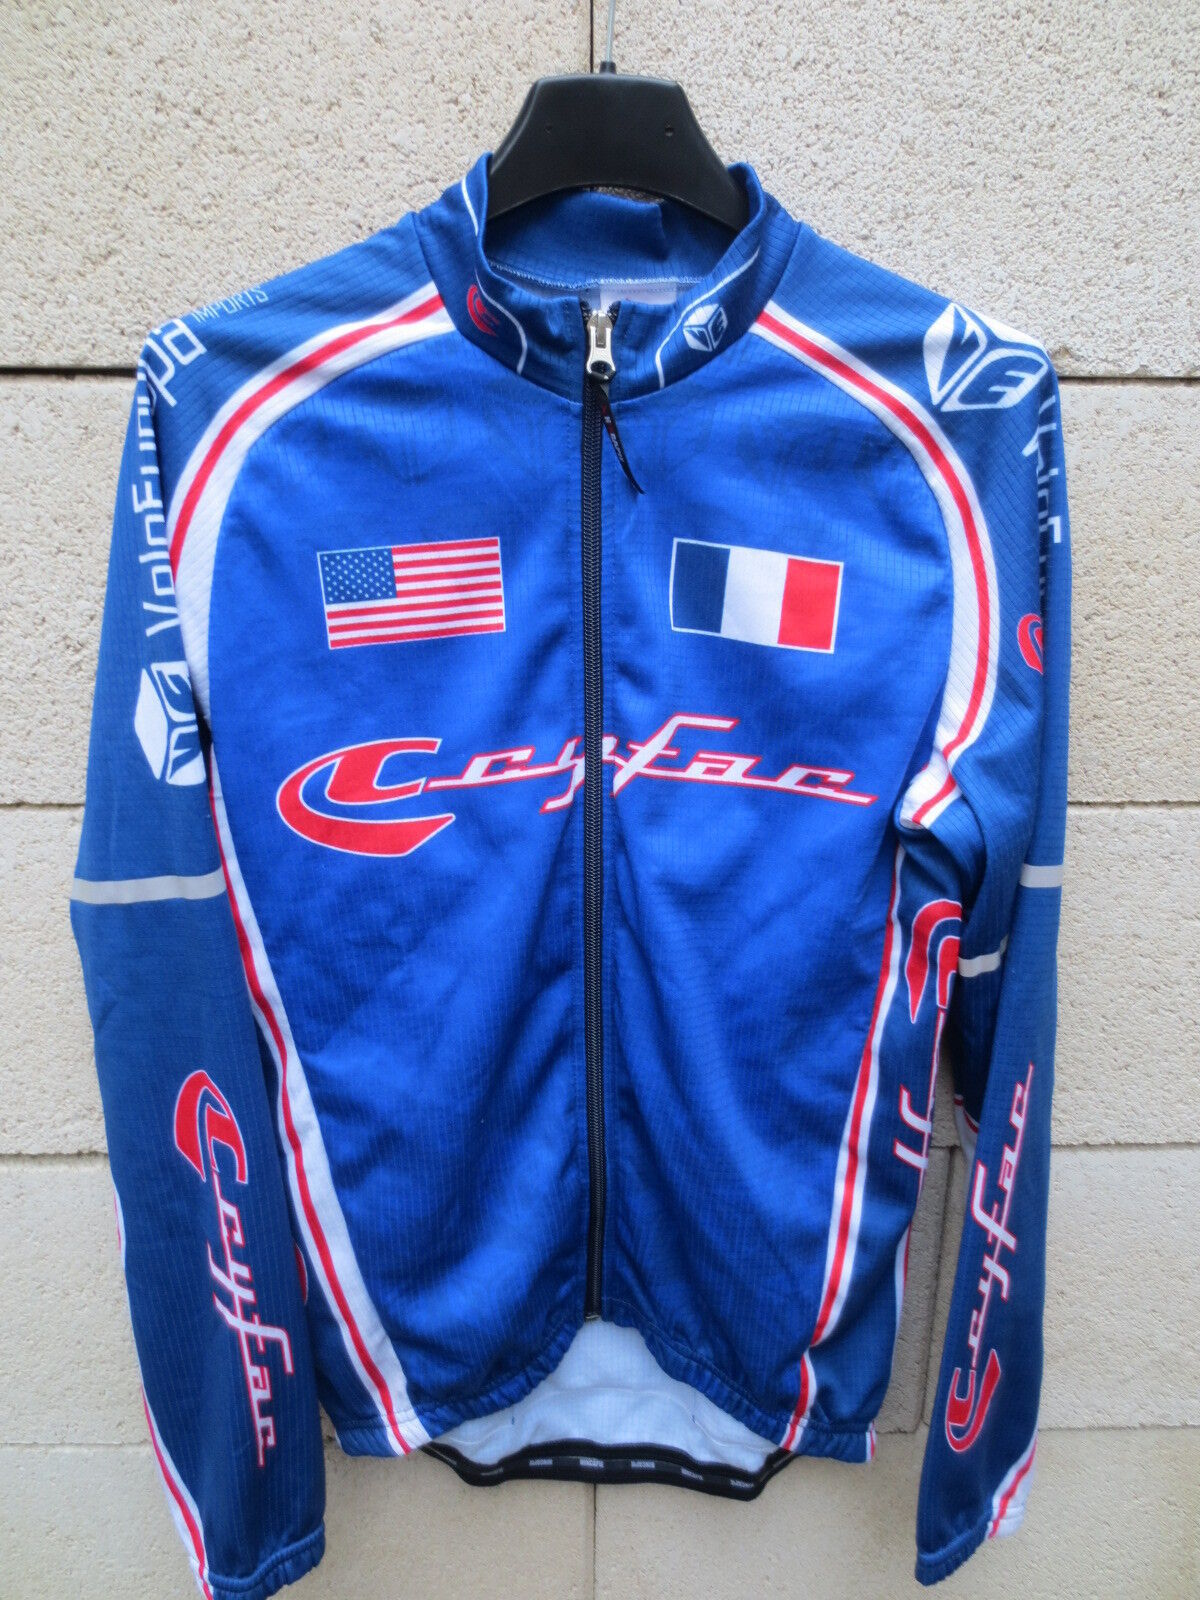 Maillot cycliste CYFAC VELOEUROPA France USA cycling shirt XS manches longues